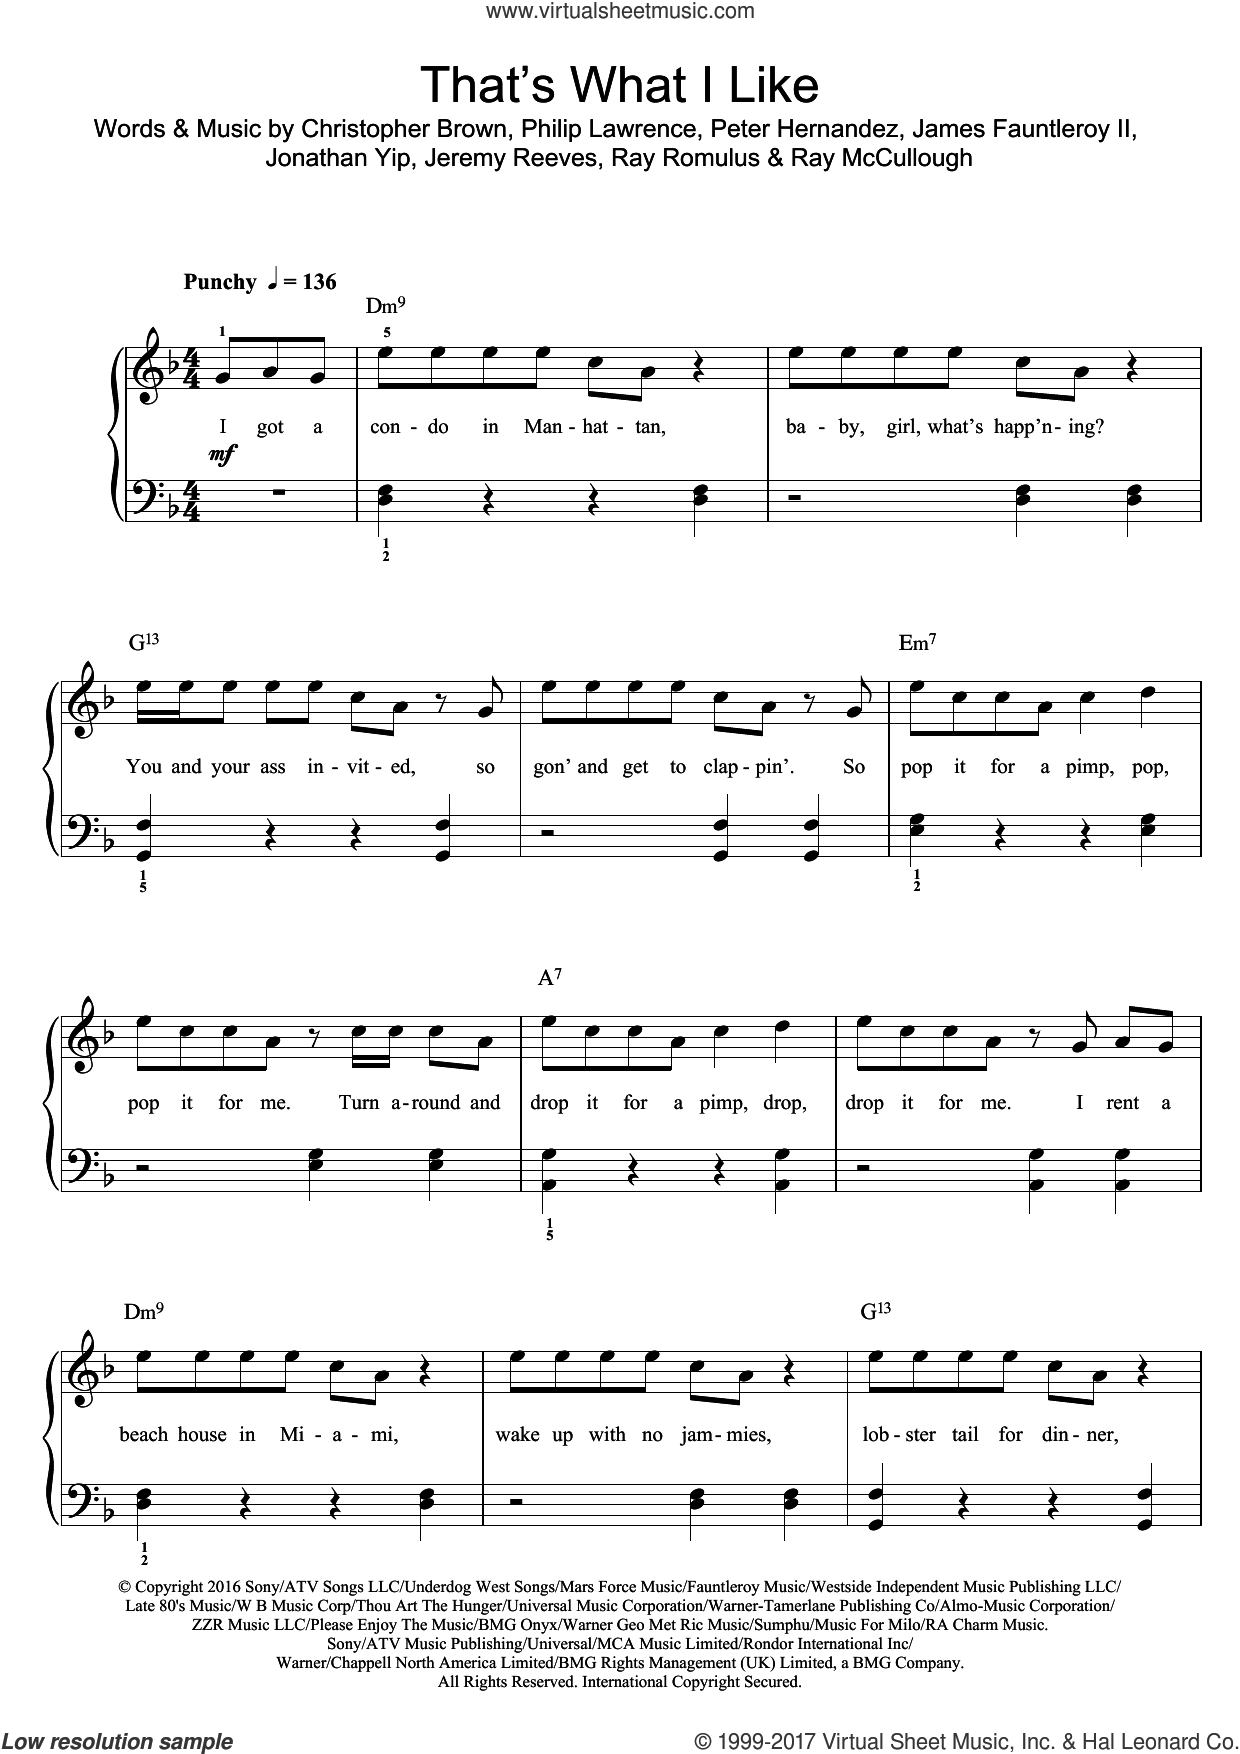 That's What I Like sheet music for piano solo (beginners) by Bruno Mars, Chris Brown, James Fauntleroy, Jeremy Reeves, Jonathan Yip, Peter Hernandez, Philip Lawrence, Ray McCullough and Ray Romulus, beginner piano (beginners)